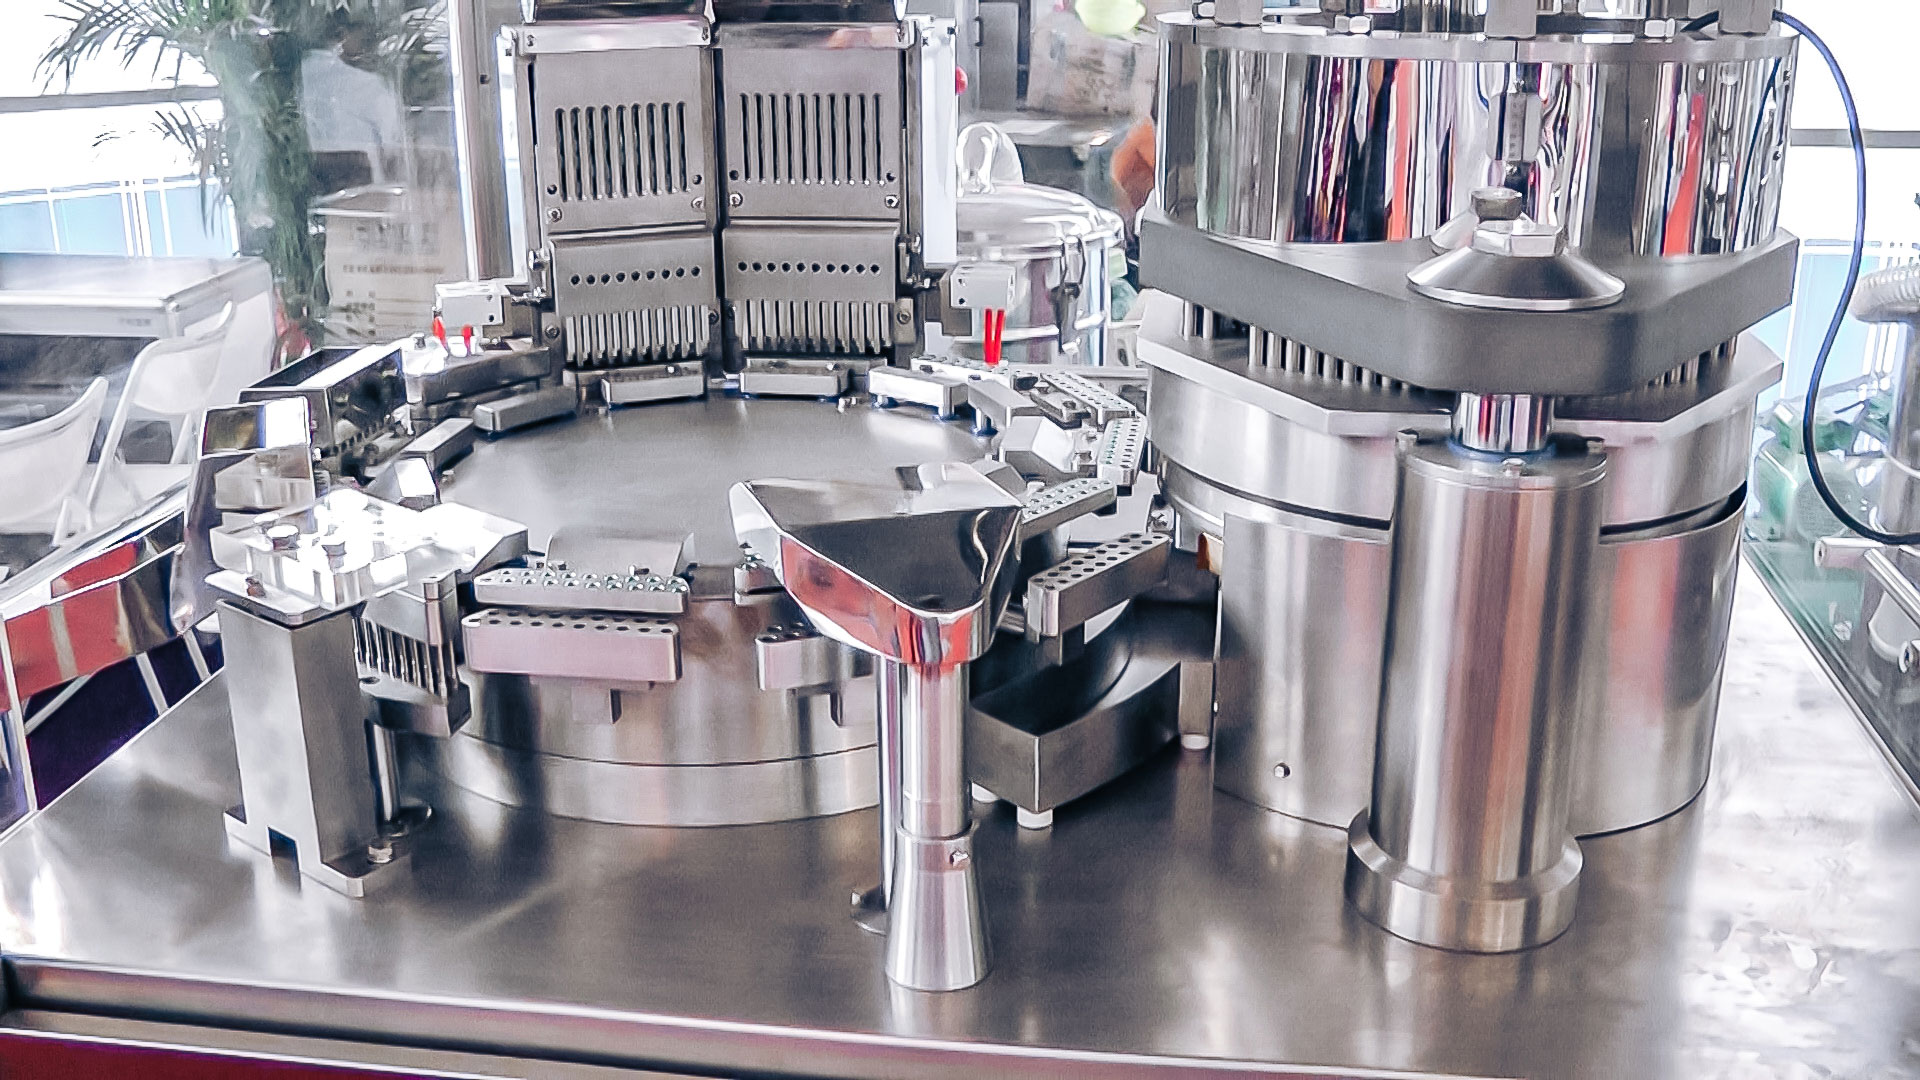 Automatic equipment for powder filling of gelatin capsules in pharmaceutical production